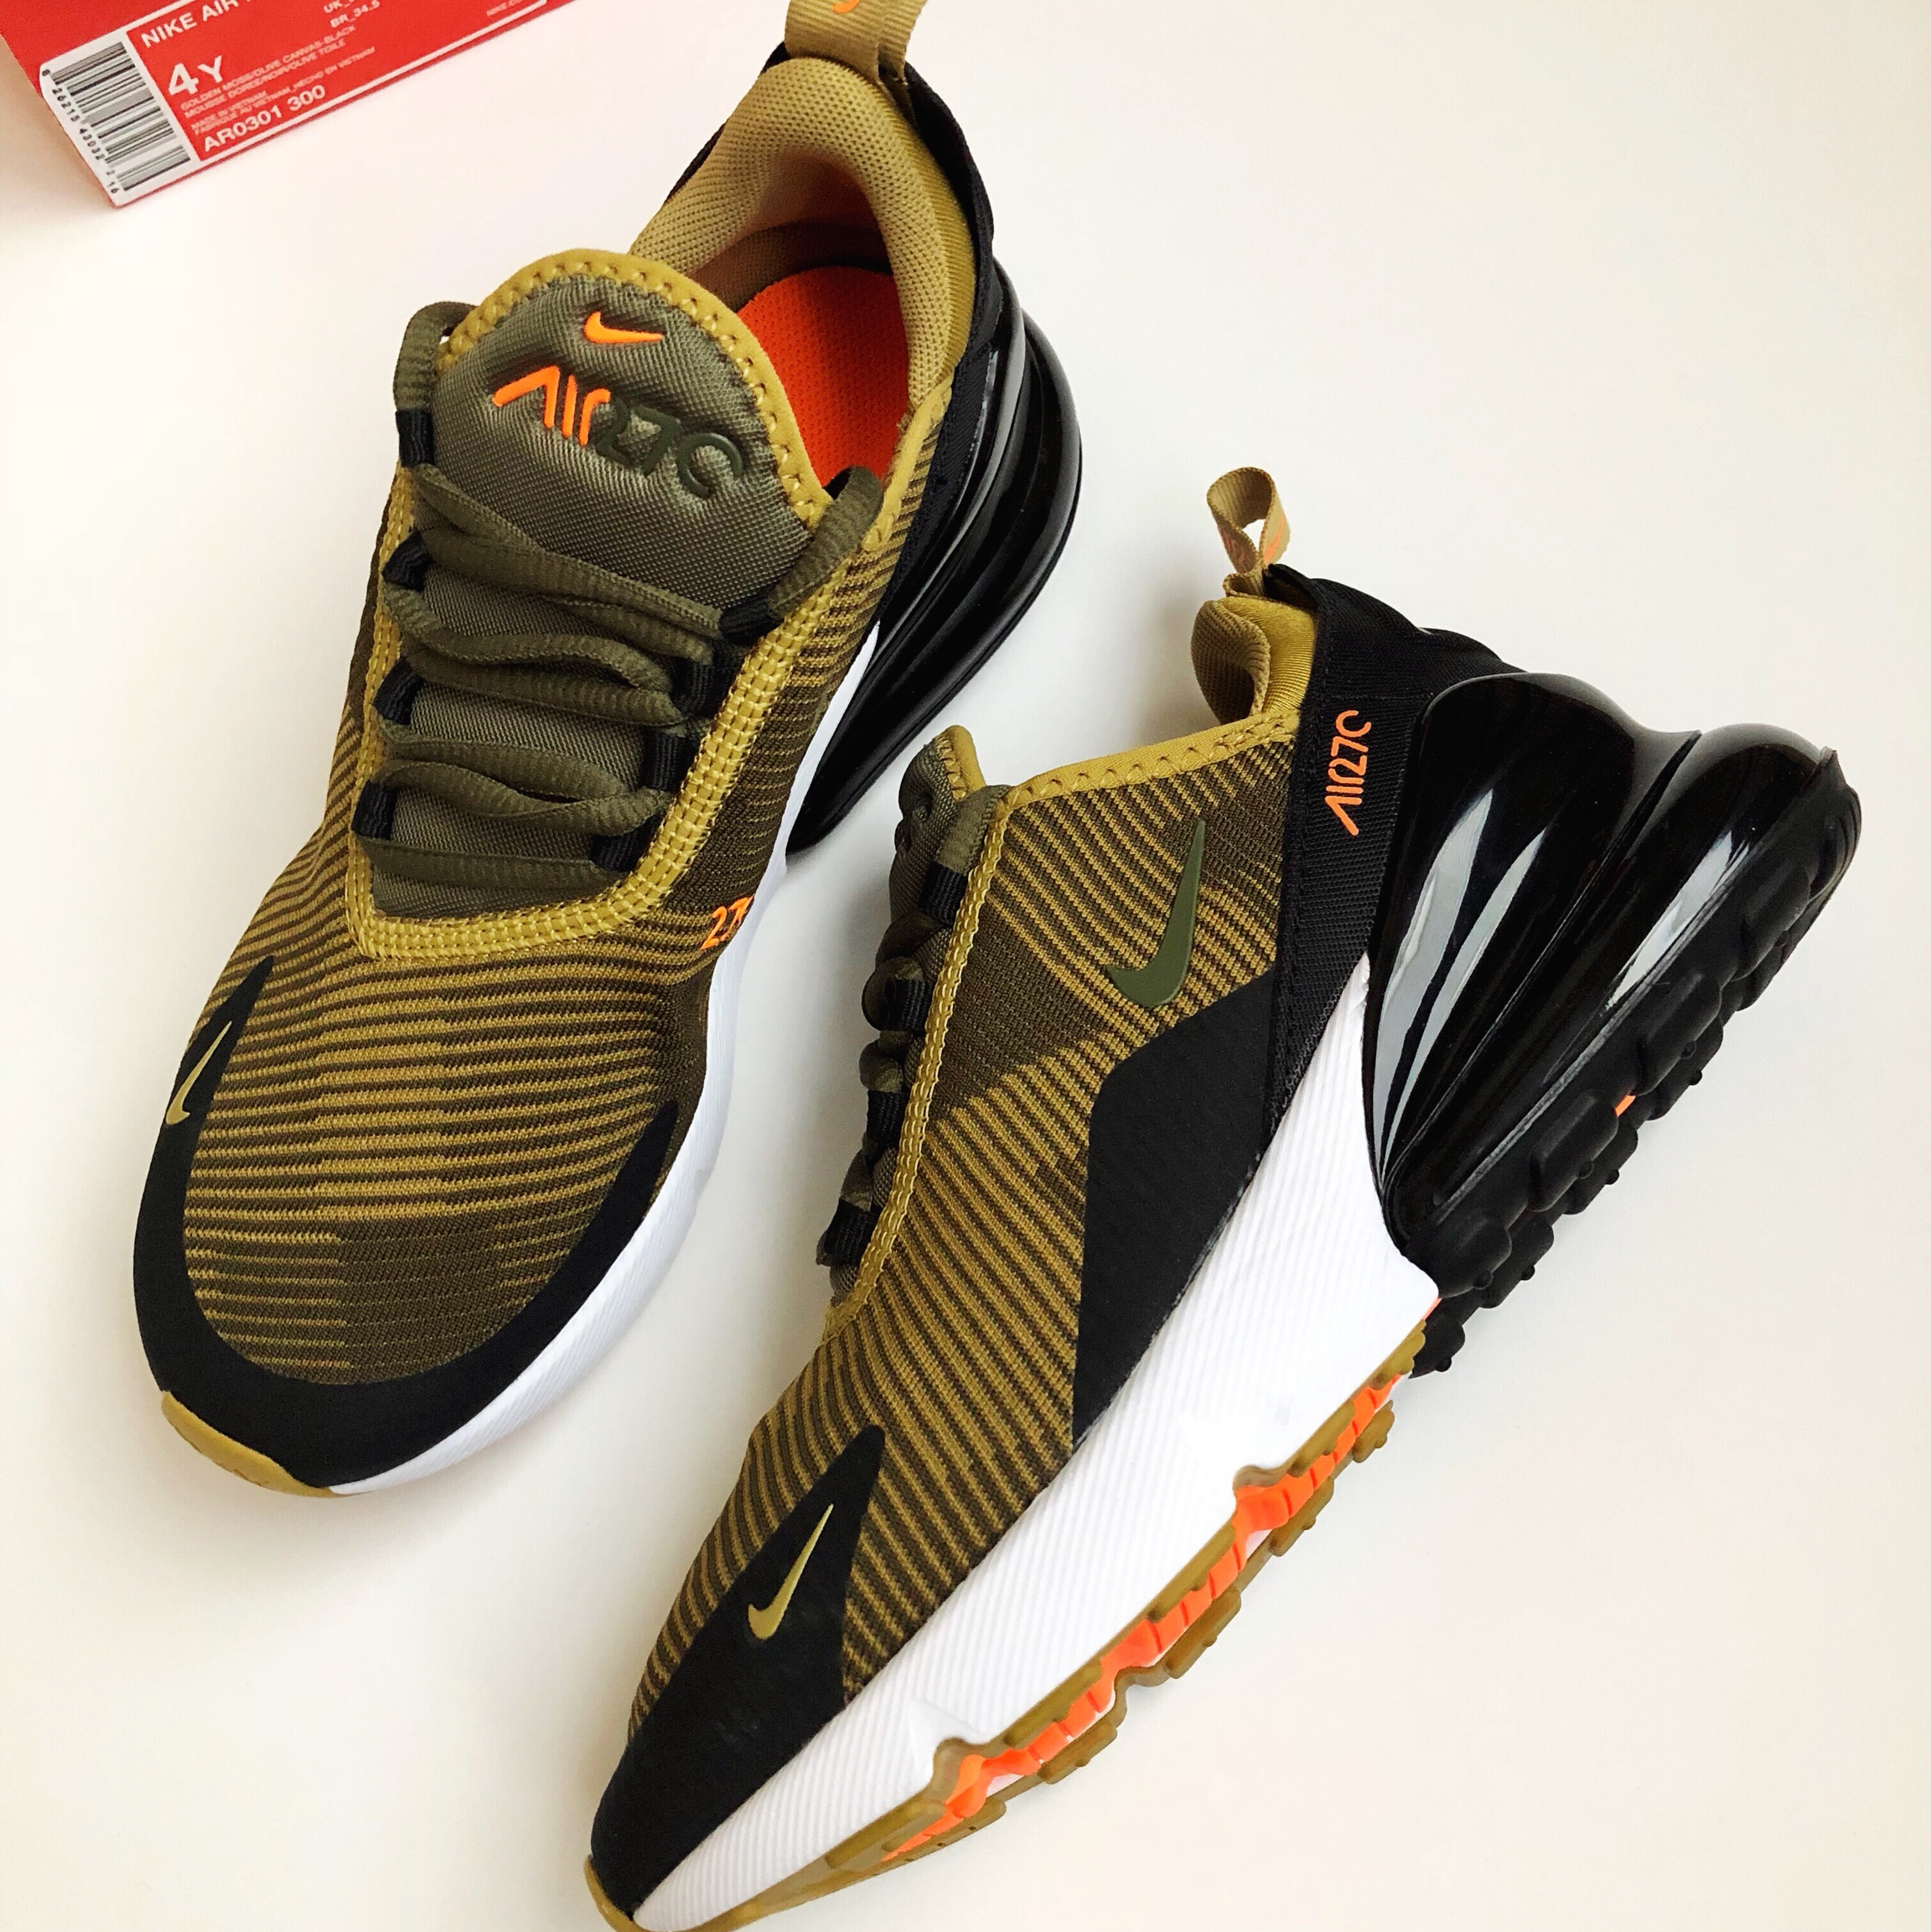 BRAND NEW, NEVER WORN Nike air max 270! •Size: 4Y Depop